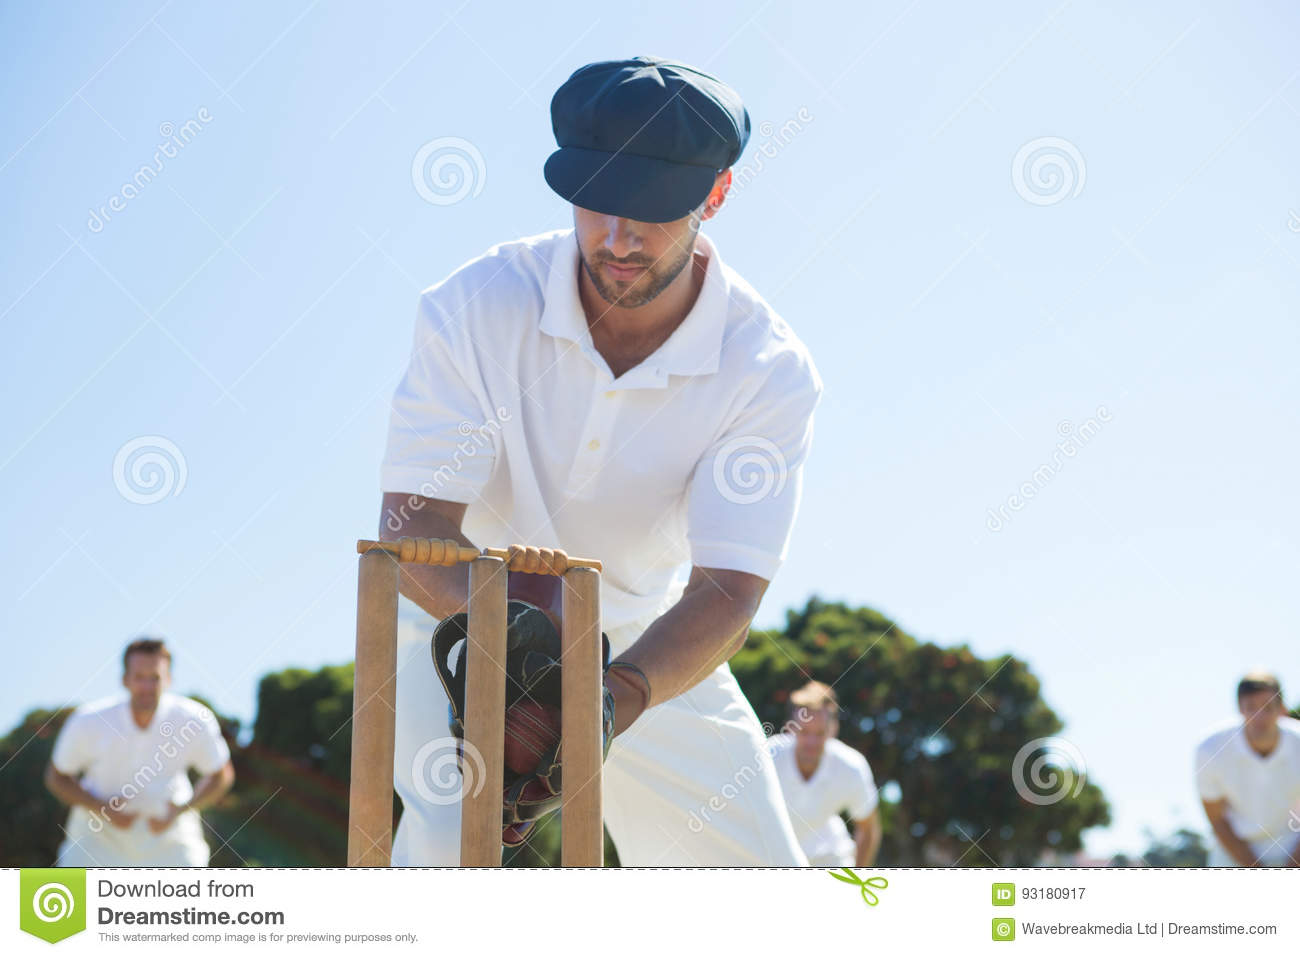 Close up of wicket keeper standing by stumps